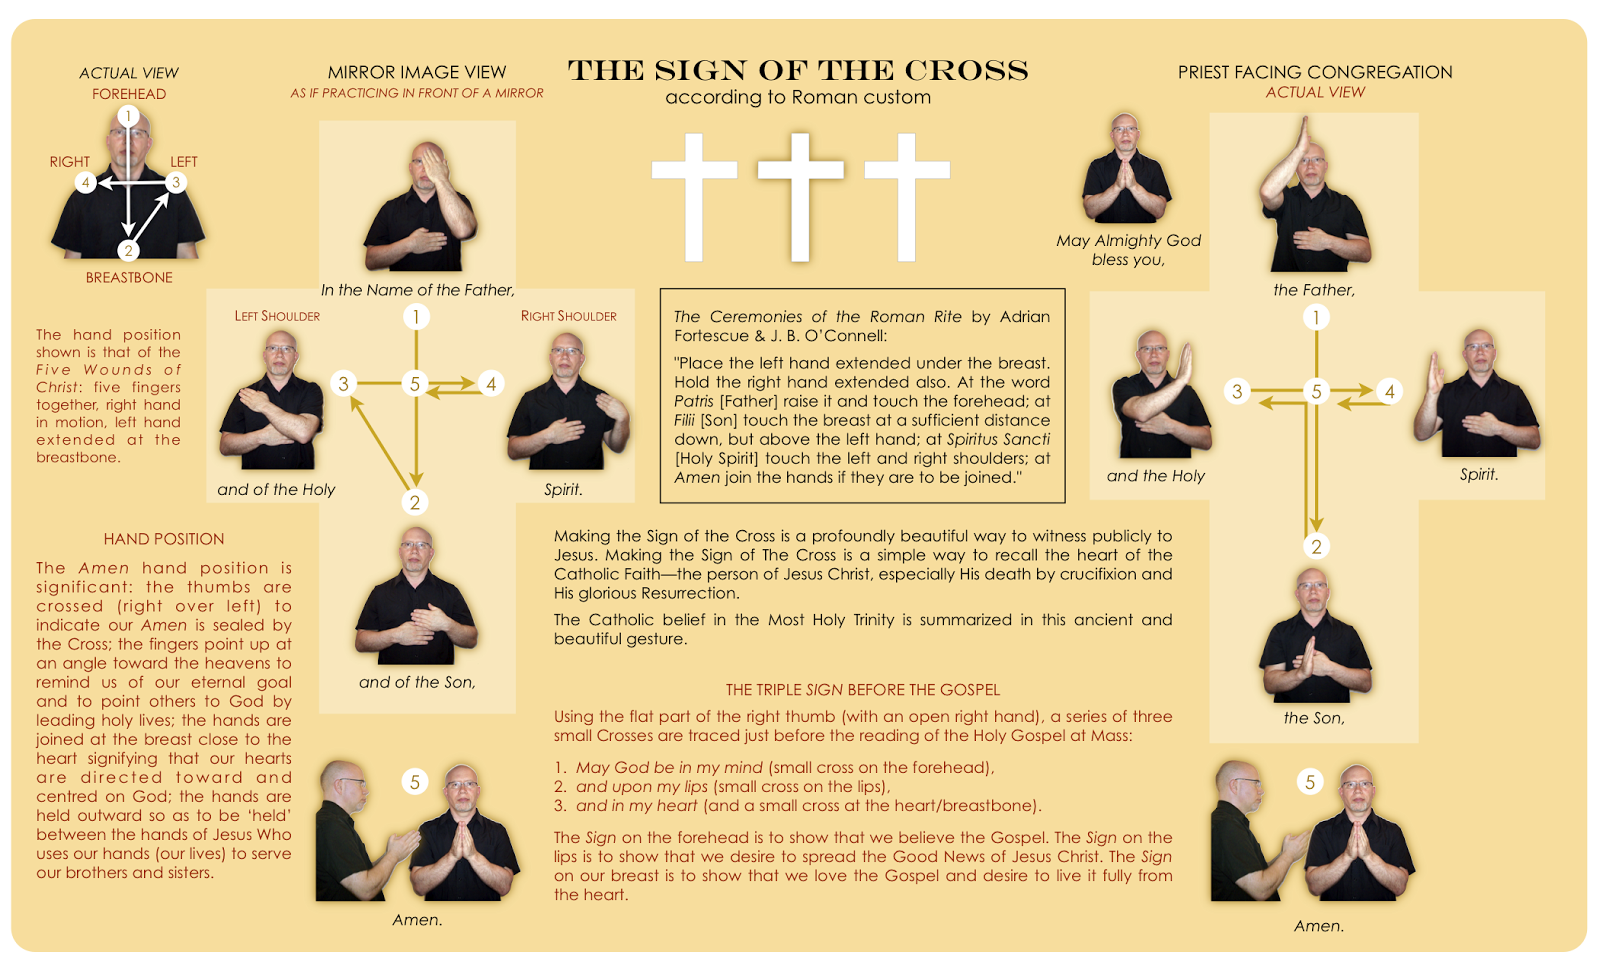 Making the Sign of the Cross (1)